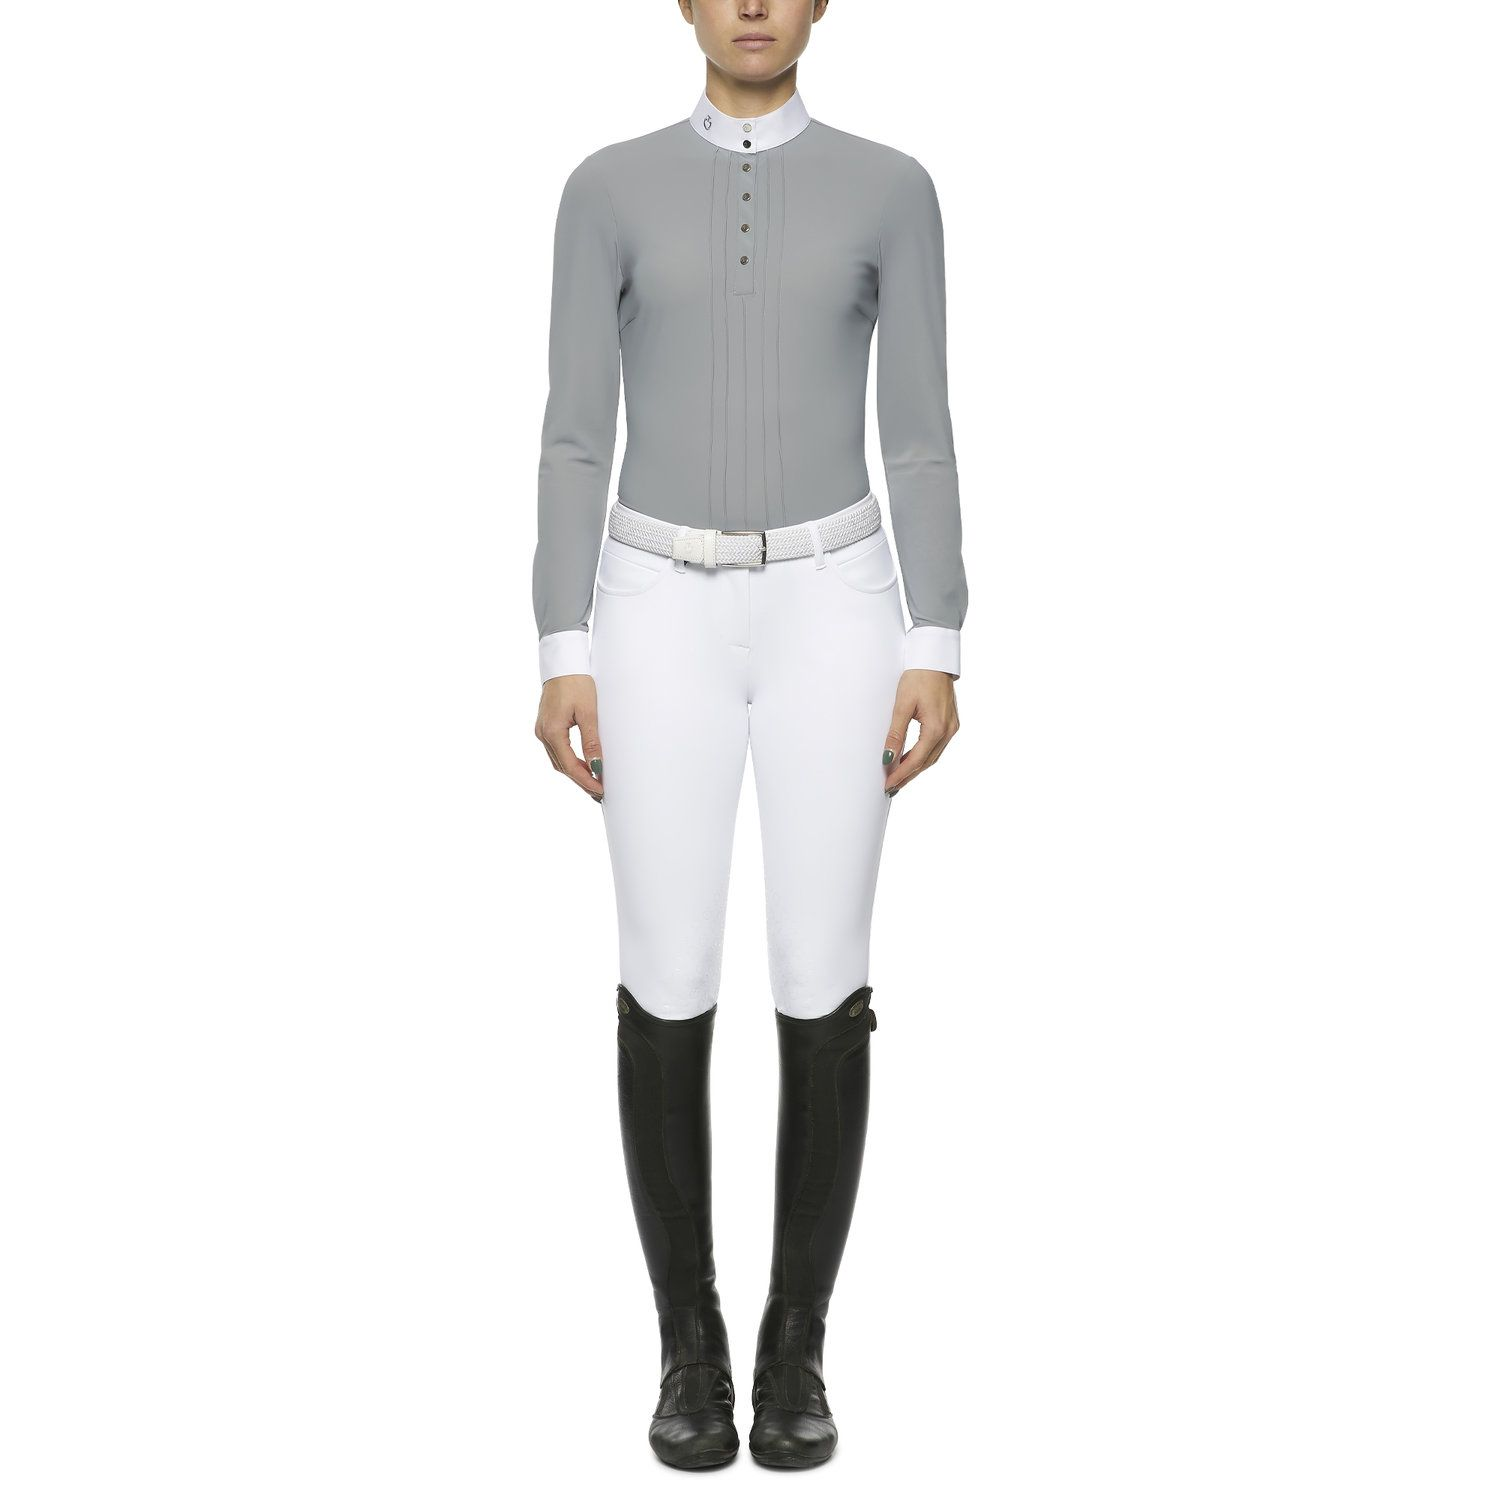 Pleated long-sleeved competition polo shirt